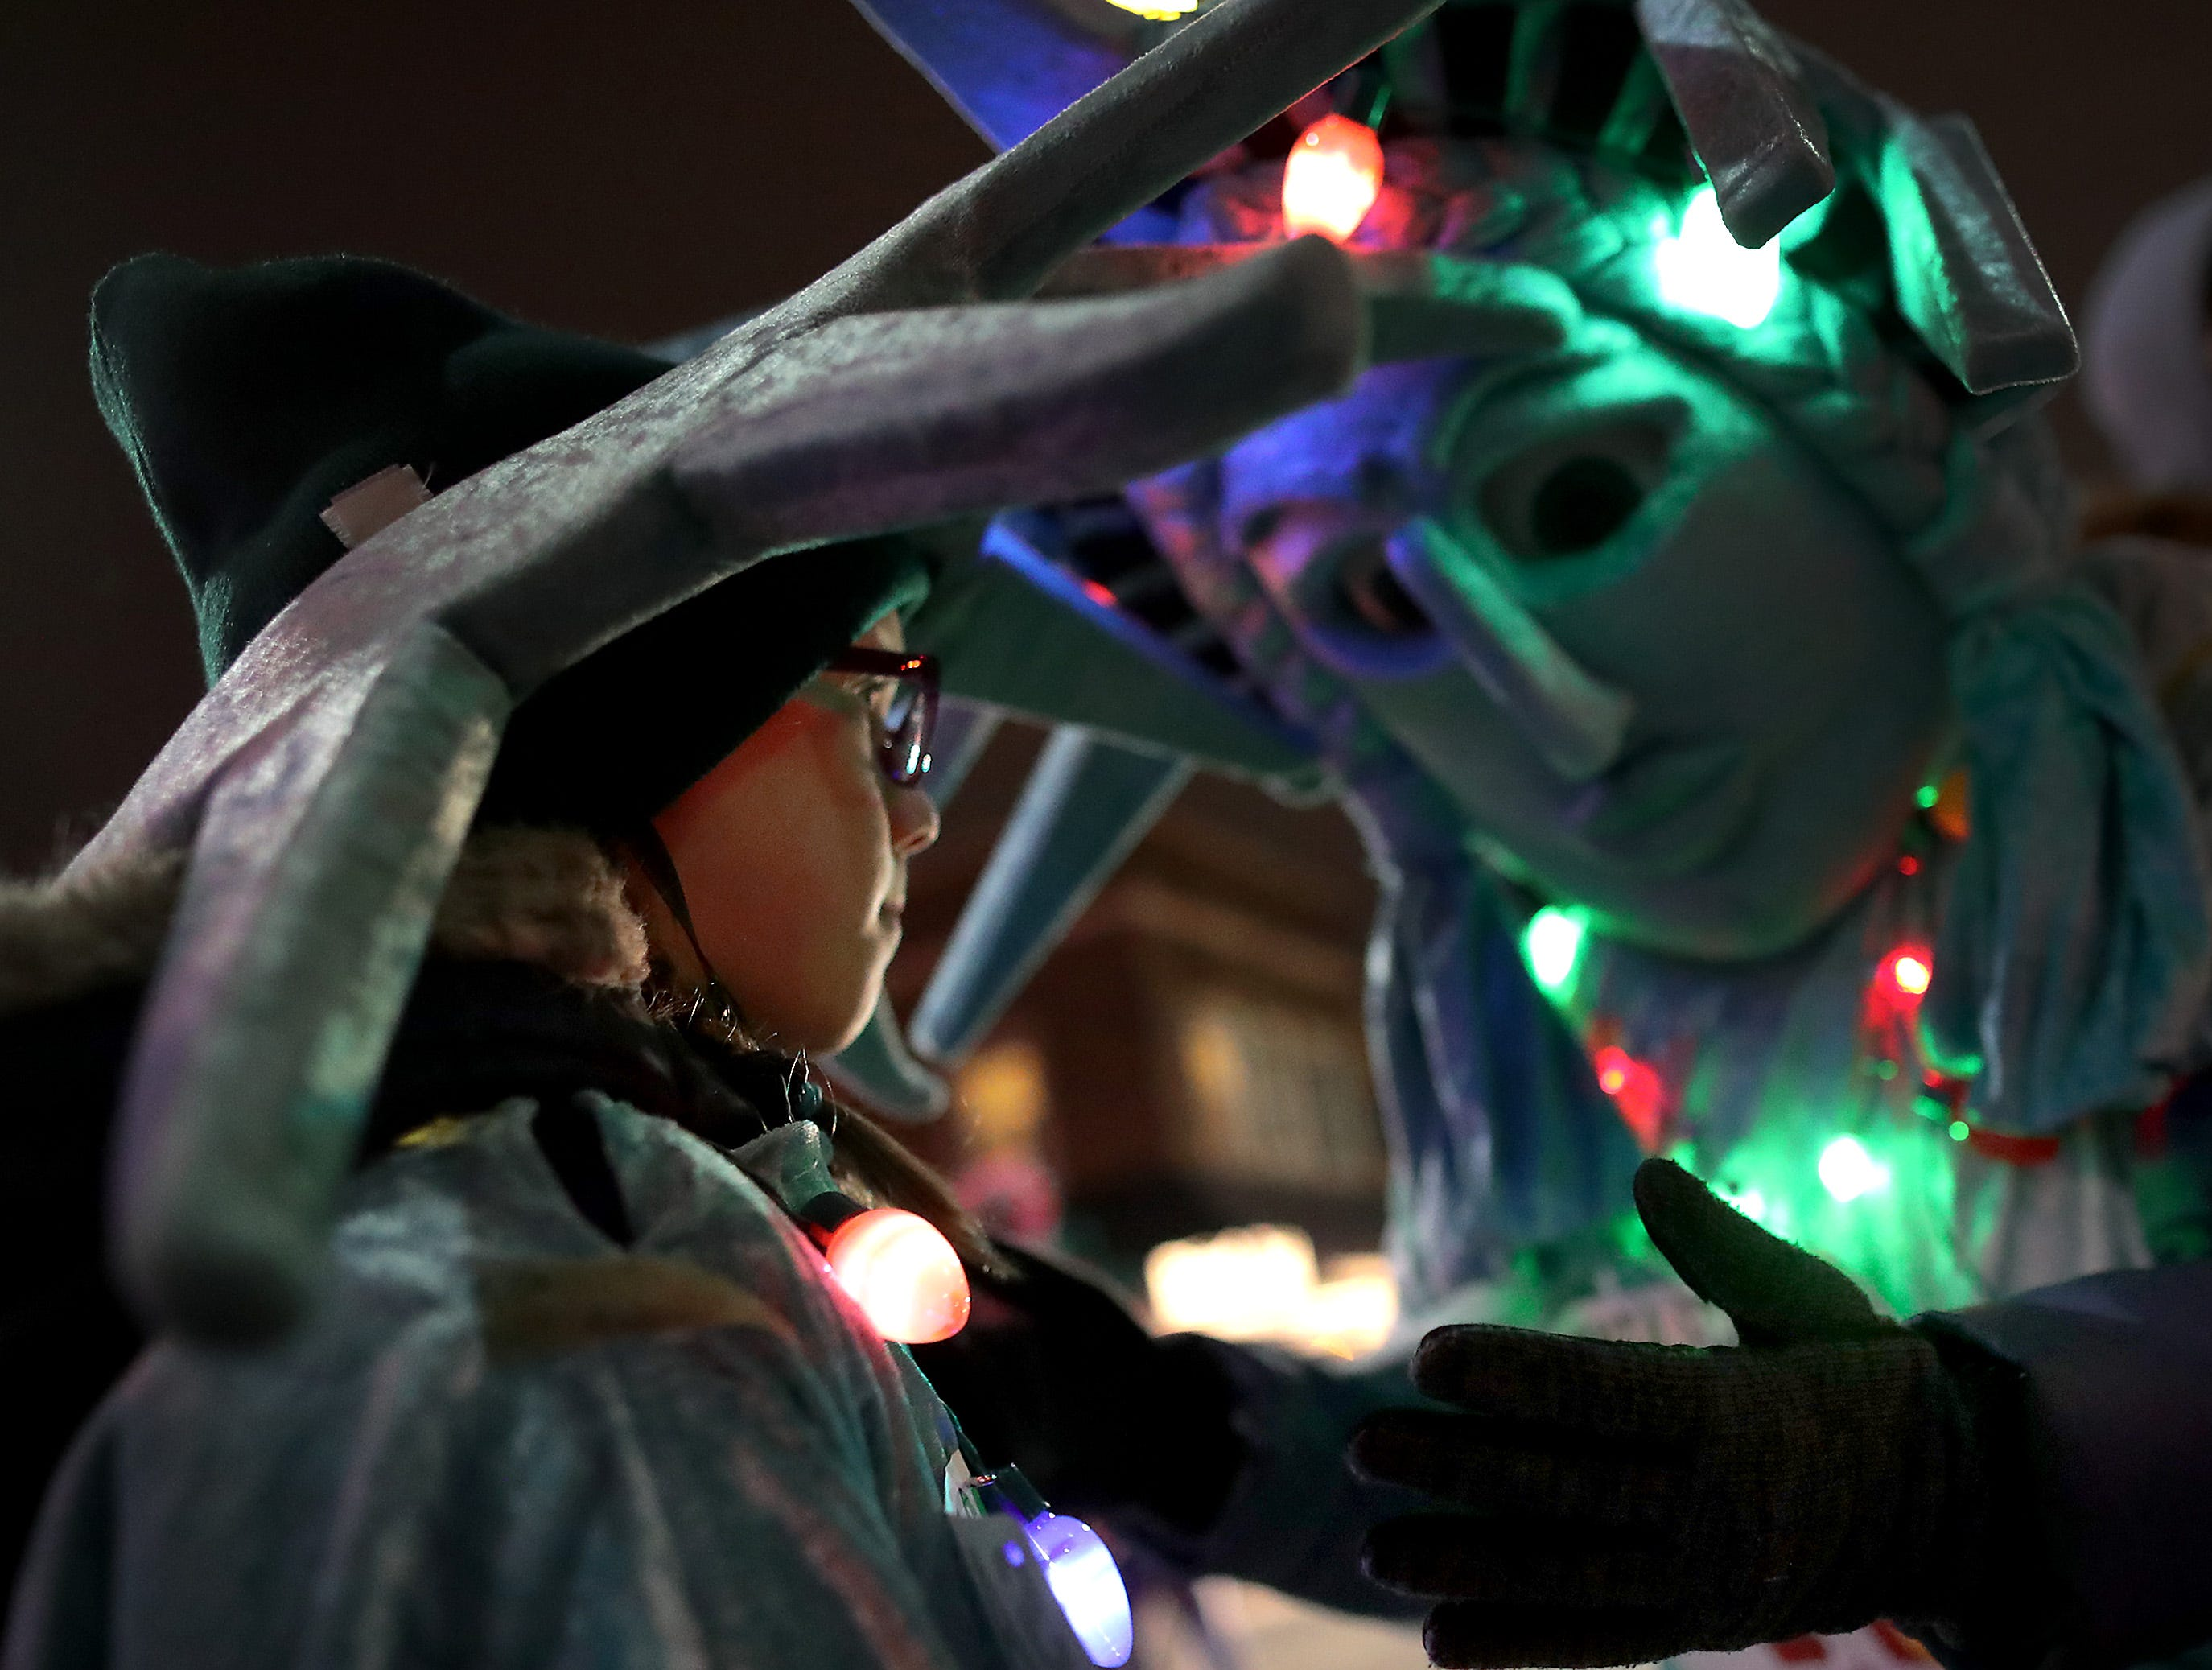 """Yoly Anderson, right, and her daughter Eva, both dressed as Lady Liberty, prepare to run the Santa Scamper before the 48th Annual Downtown Appleton Christmas Parade on Tuesday, Nov. 20, 2018 in Appleton, Wis. This year's theme was """"Home for the Holidays."""" Wm. Glasheen/USA TODAY NETWORK-Wisconsin."""